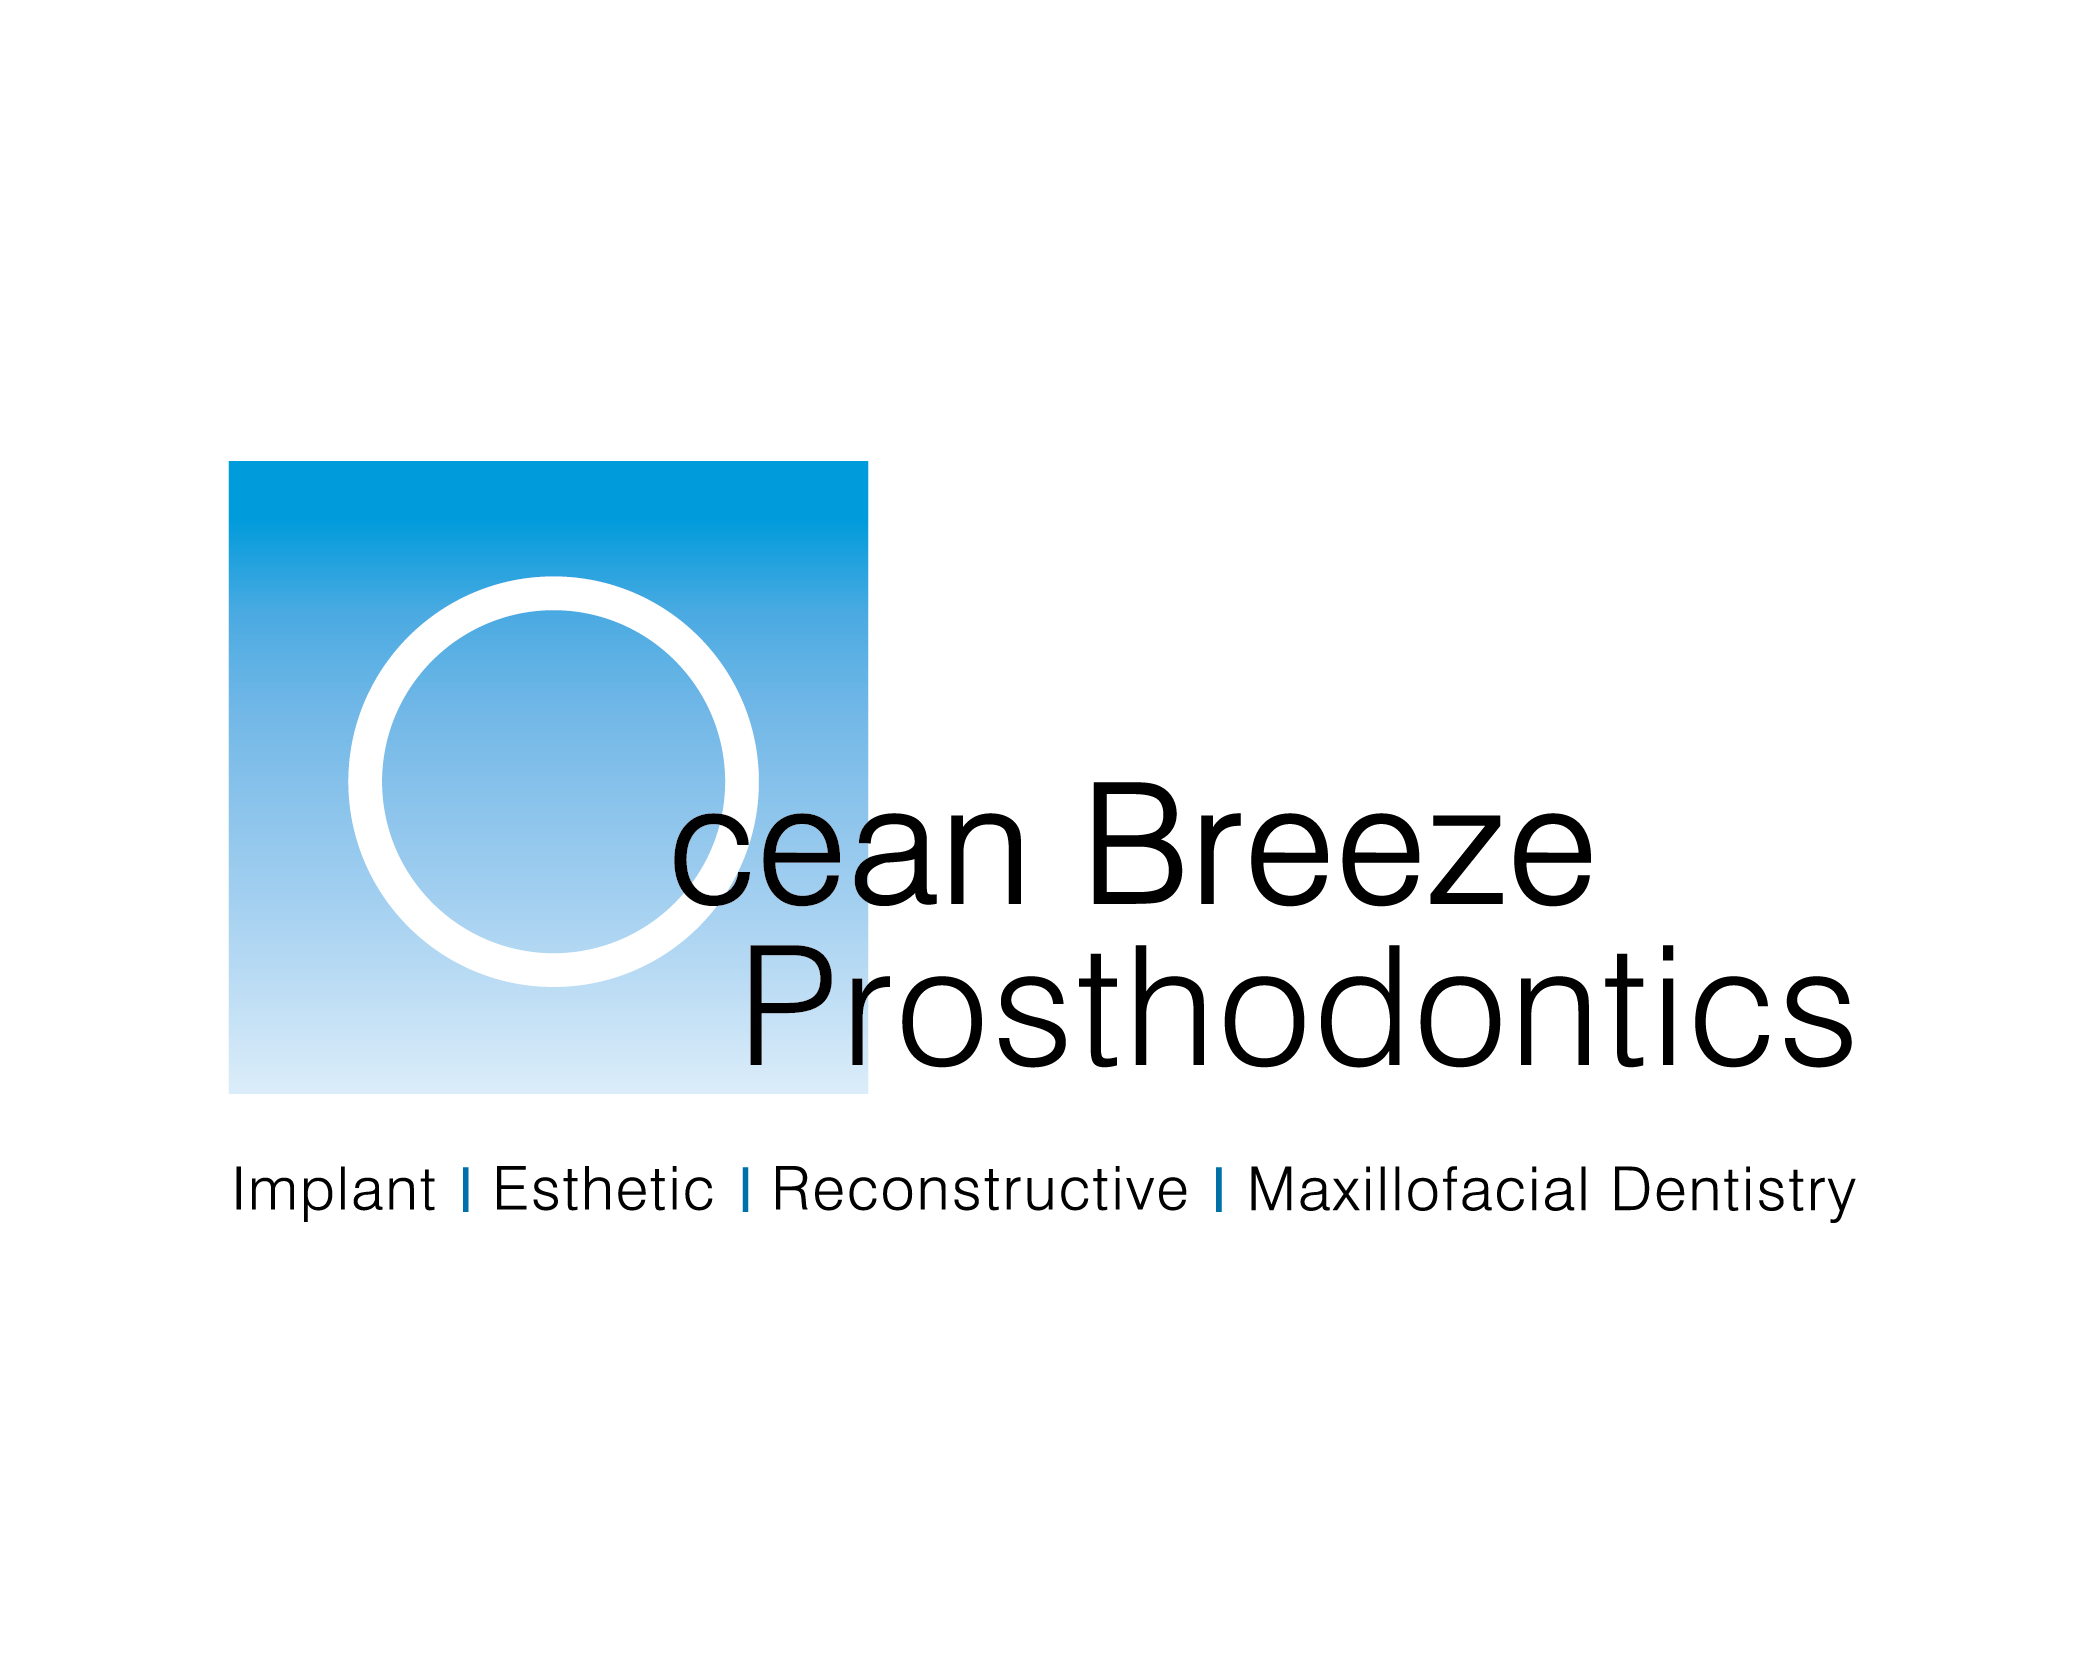 A Delray Beach Dentist Becomes Part Of A Select Group Of 150 Maxillofacial Prosthodontists In The United States